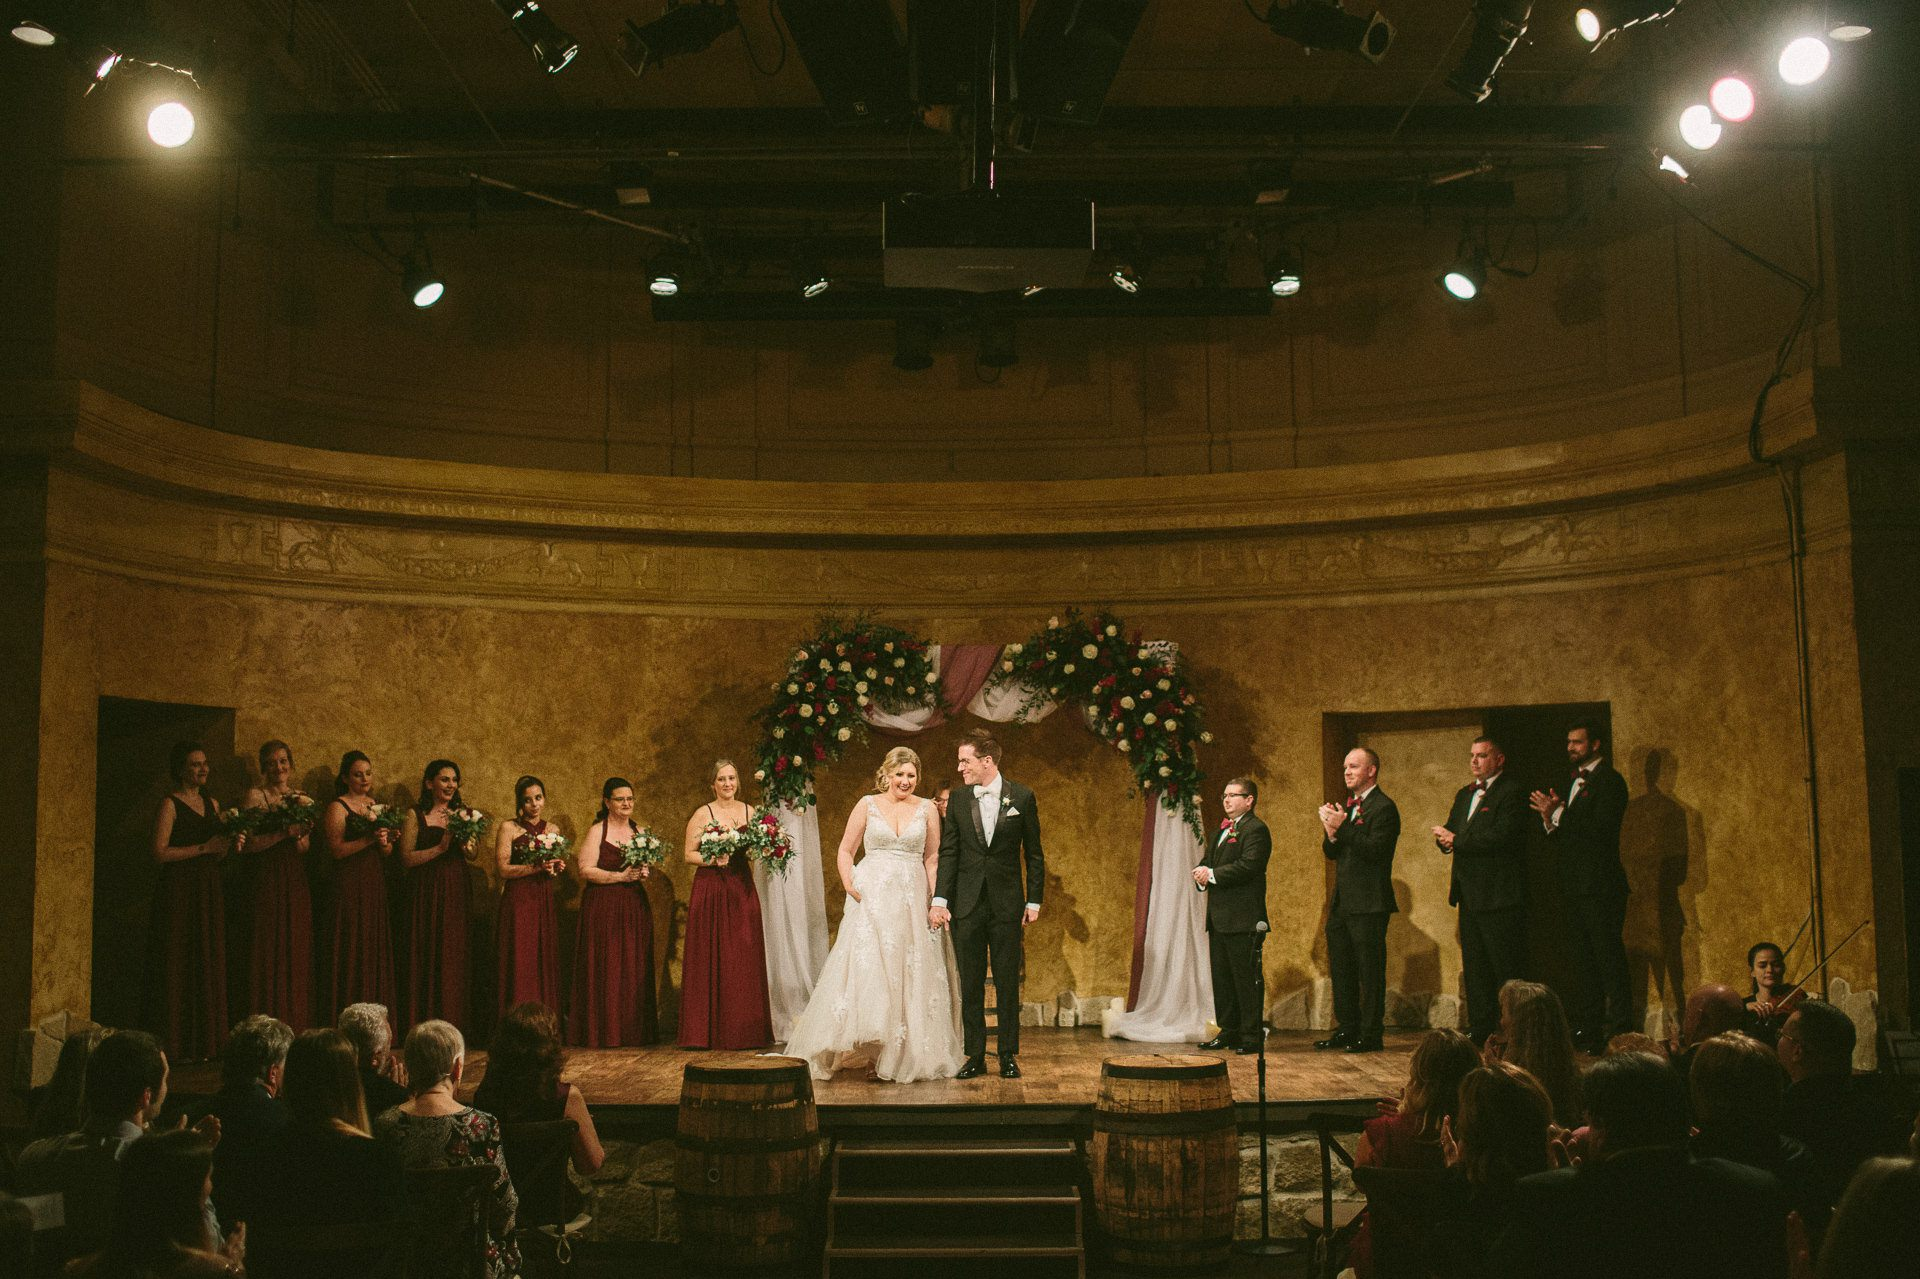 Cibreo Privato Wedding at Playhouse Square in Cleveland 2 7.jpg